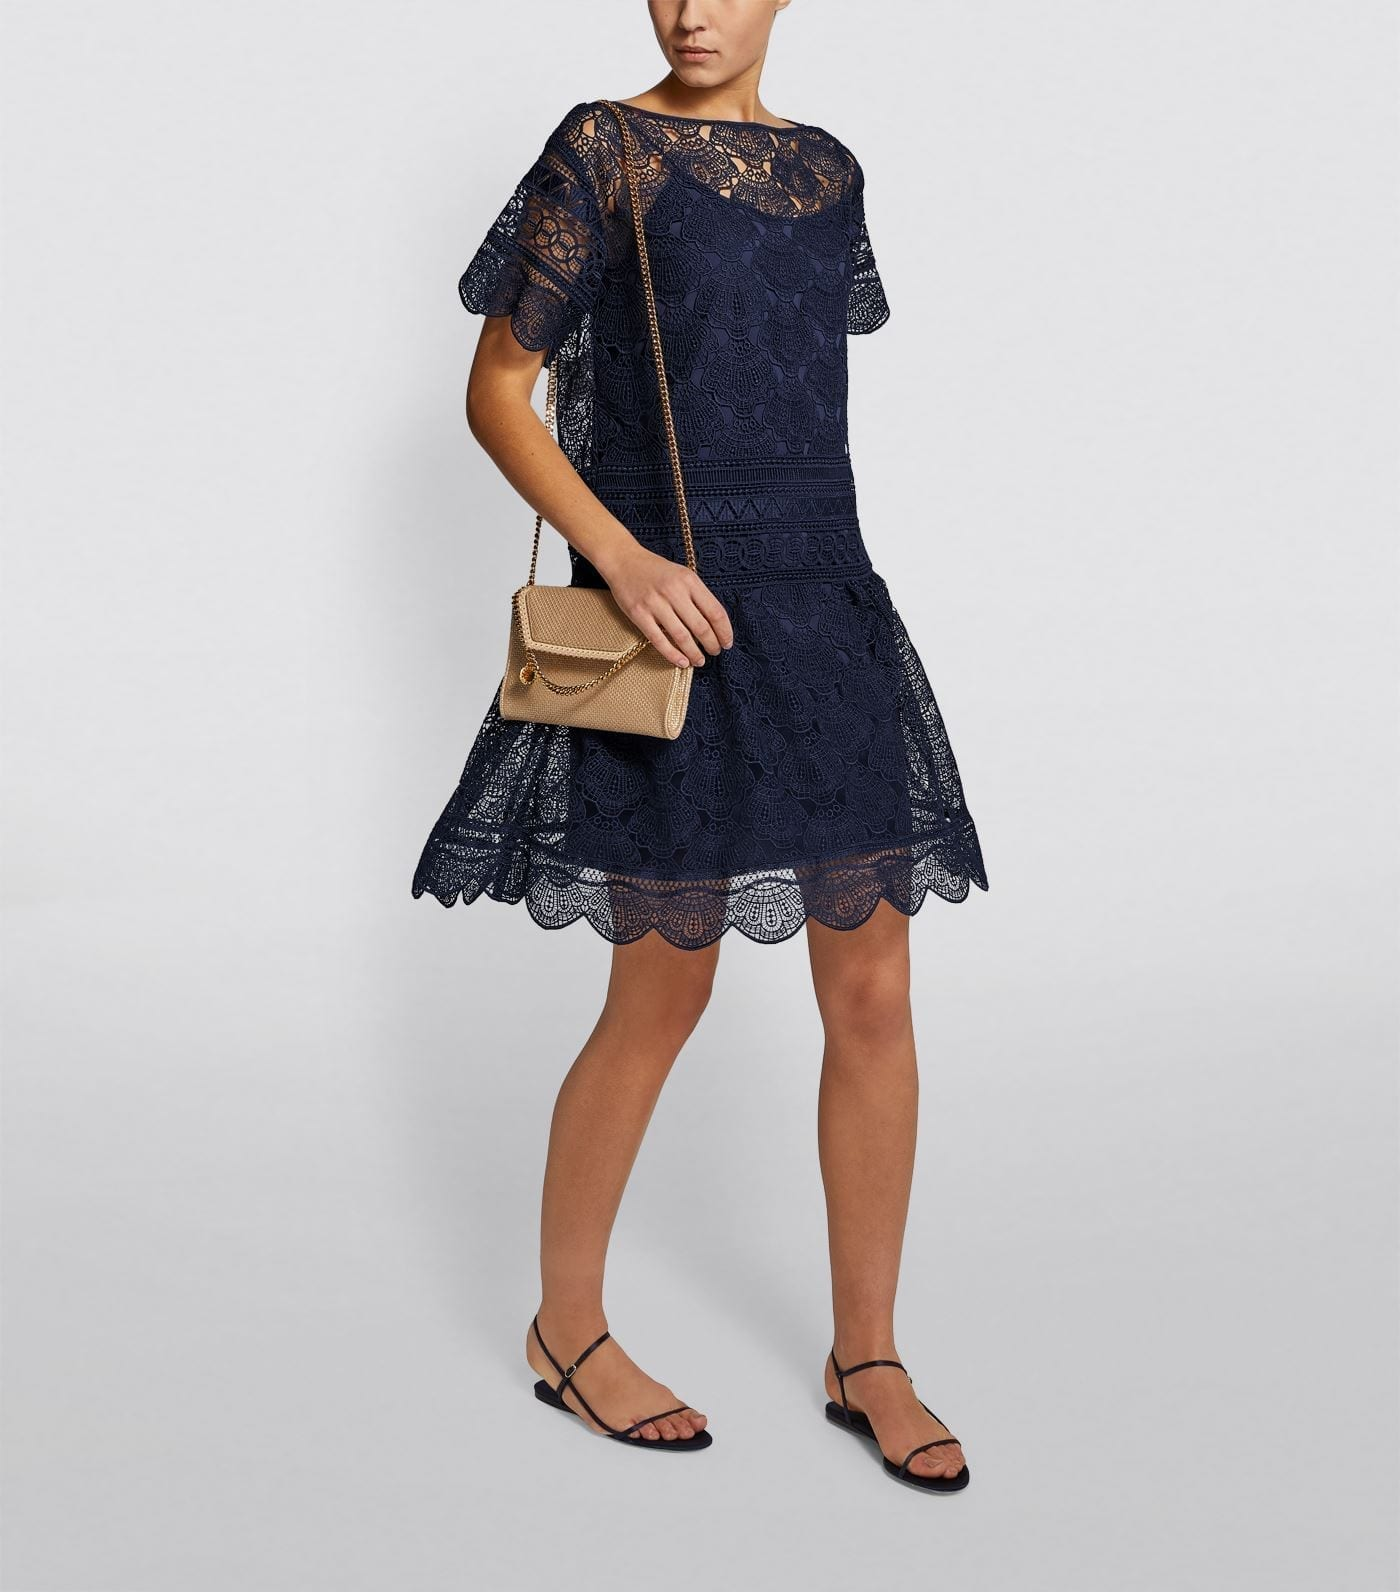 ALBERTA FERRETTI Lace Overlay Dress